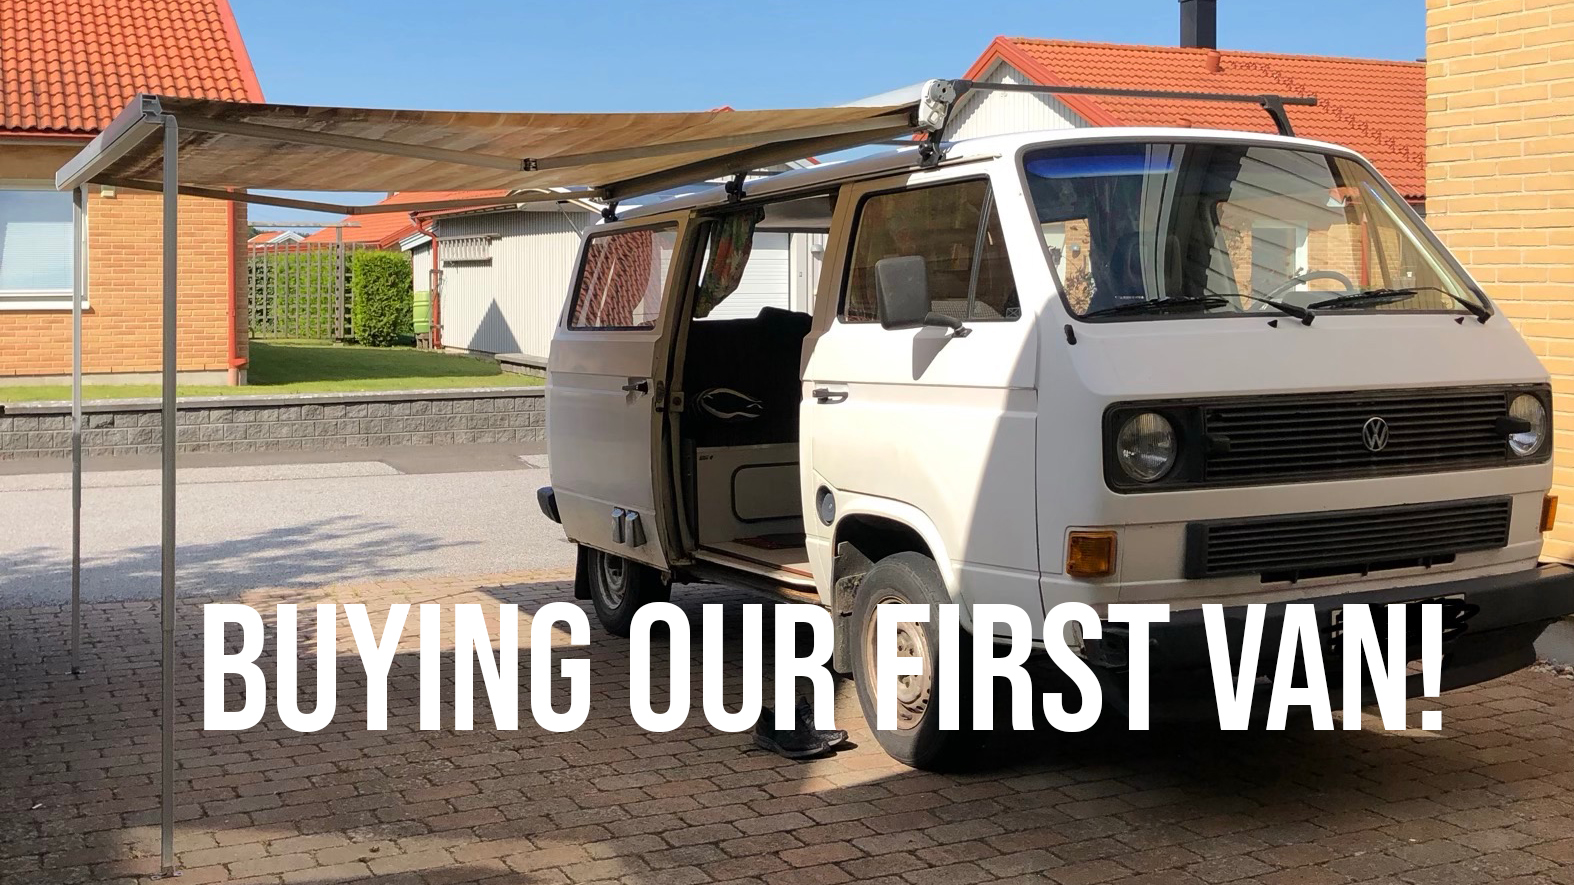 New video; We bought us a VAN!